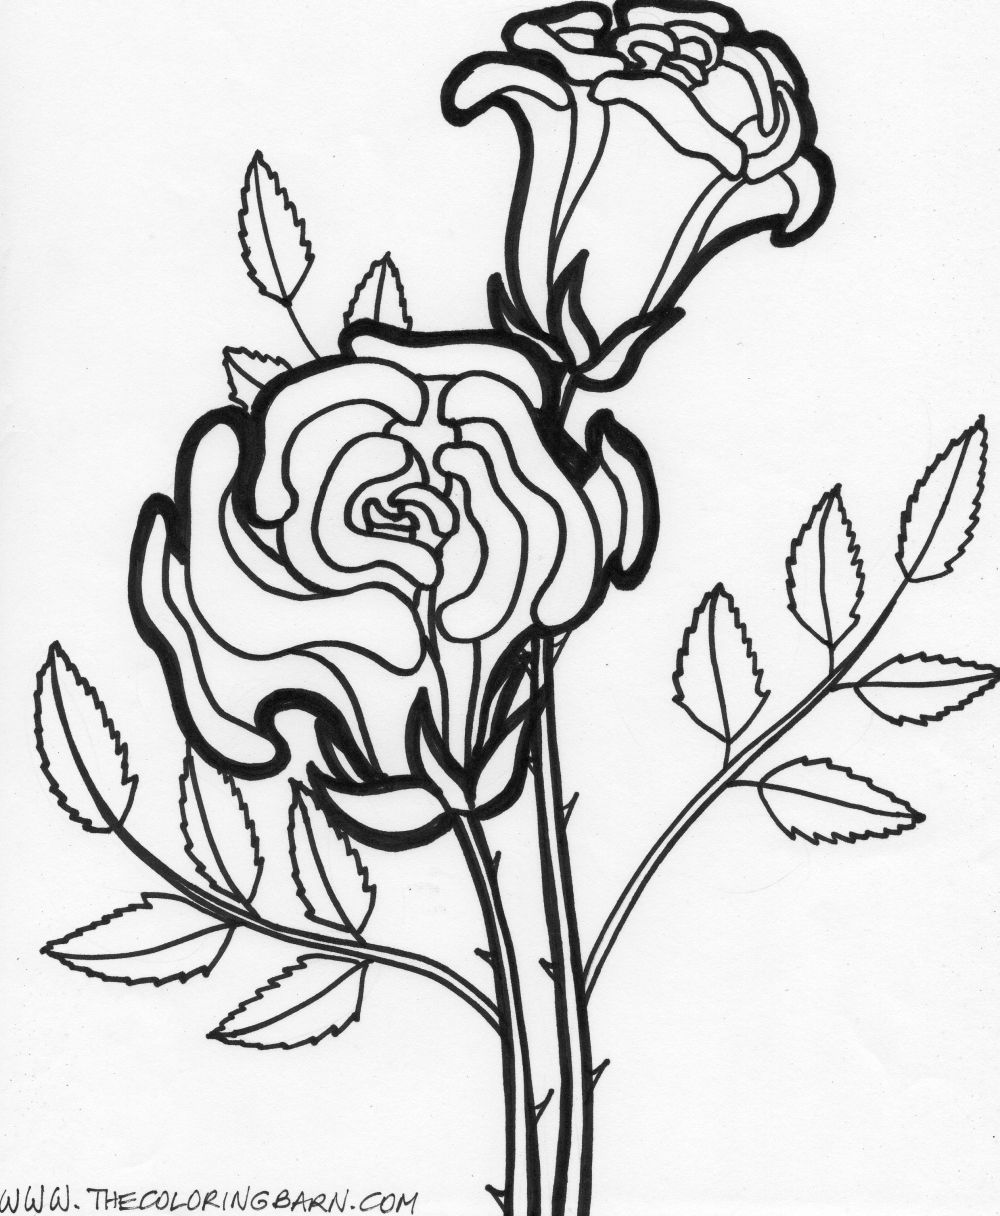 Coloring Pages Worksheets: Simple Flower Coloring Pages ... | colouring pages flowers printable